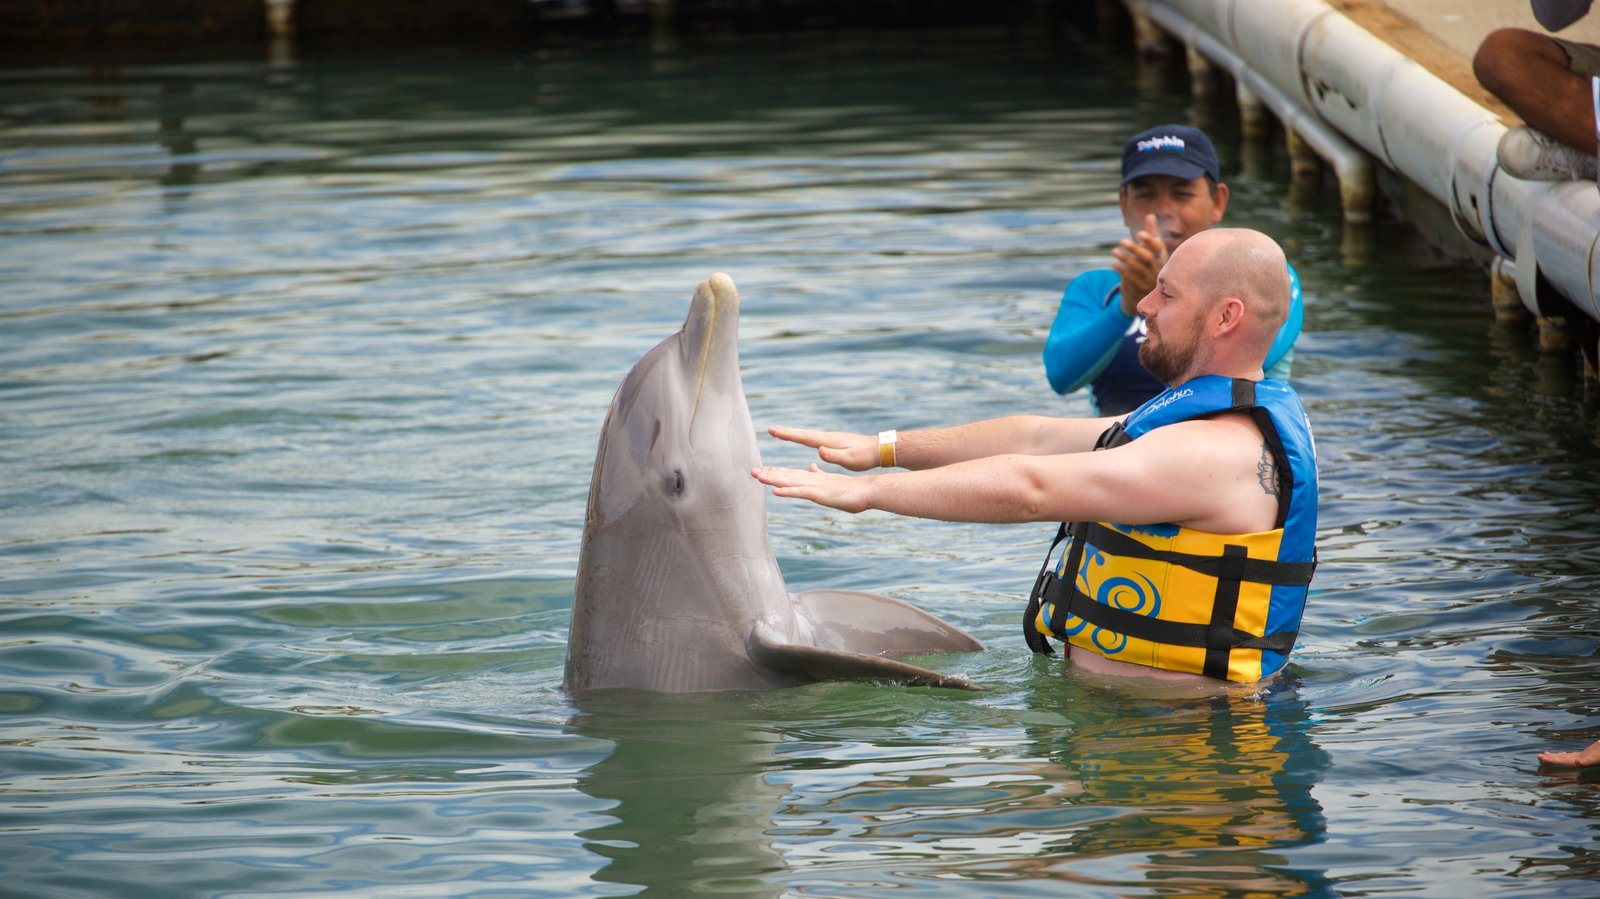 Dolphin Discovery Puerto Los Cabos featuring marine life and swimming as well as an individual male